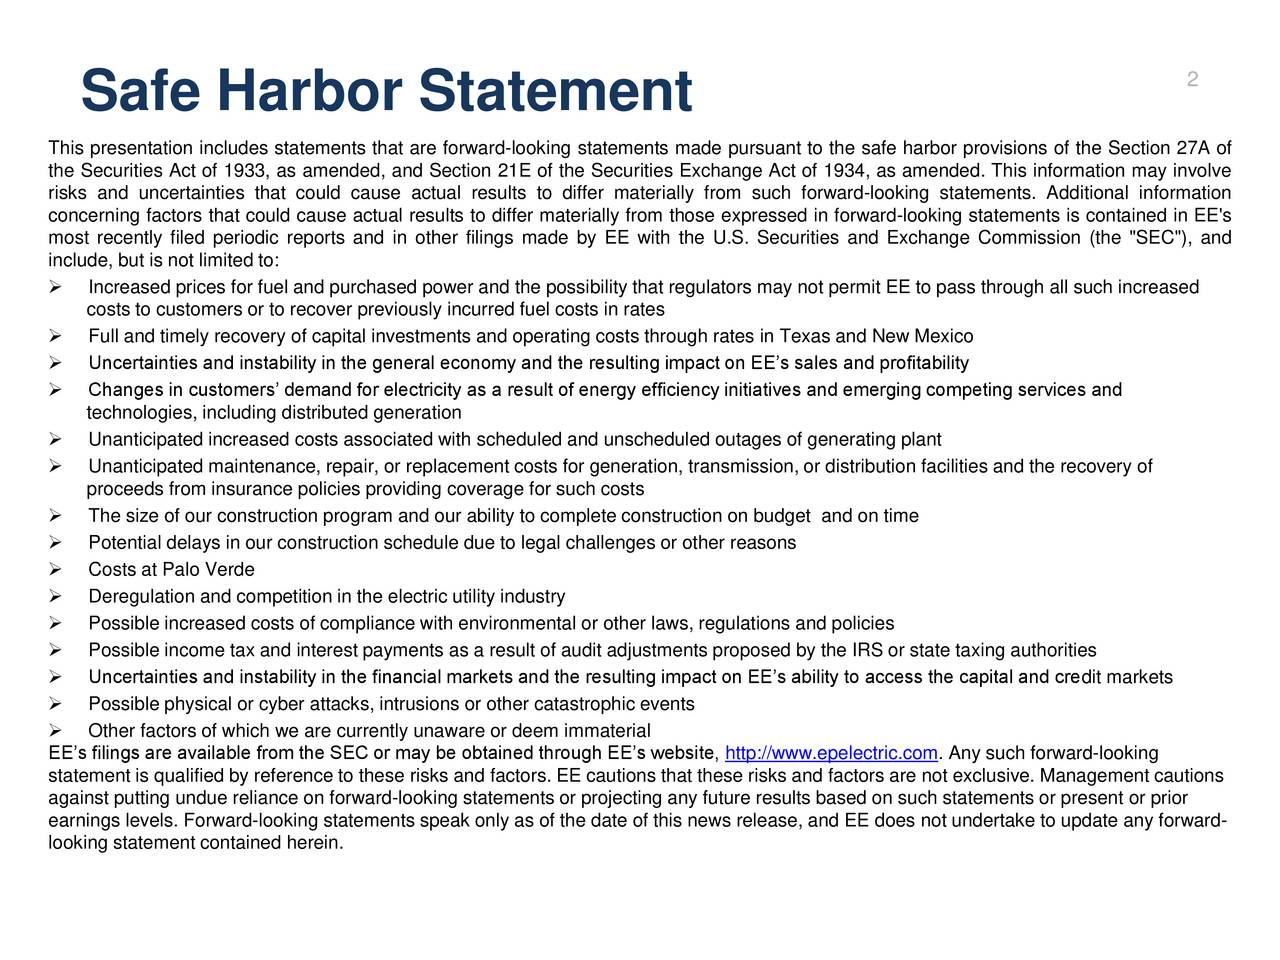 """Safe Harbor Statement This presentation includes statements that are forward-looking statements made pursuant to the safe harbor provisions of the Section 27A of the Securities Act of 1933, as amended, and Section 21E of the Securities Exchange Act of 1934, as amended. This information may involve risks and uncertainties that could cause actual results to differ materially from such forward-looking statements. Additional information concerning factors that could cause actual results to differ materially from those expressed in forward-looking statements is contained in EE's most recently filed periodic reports and in other filings made by EE with the U.S. Securities and Exchange Commission (the """"SEC""""), and include, but is not limited to: Increased prices for fuel and purchased power and the possibility that regulators may not permit EE to pass through all such increased costs to customers or to recover previously incurred fuel costs in rates Full and timely recovery of capital investments and operating costs through rates in Texas and New Mexico Uncertainties and instability in the general economy and the resulting impact on EEs sales and profitability Changes in customers demand for electricity as a result of energy efficiency initiatives and emerging competing services and technologies, including distributed generation Unanticipated increased costs associated with scheduled and unscheduled outages of generating plant Unanticipated maintenance, repair, or replacement costs for generation, transmission, or distribution facilities and the recovery of proceeds from insurance policies providing coverage for such costs The size of our construction program and our ability to complete construction on budget and on time Potential delays in our construction schedule due to legal challenges or other reasons Costs at Palo Verde Deregulation and competition in the electric utility industry Possible increased costs of compliance with environmental or other laws, regulations and"""